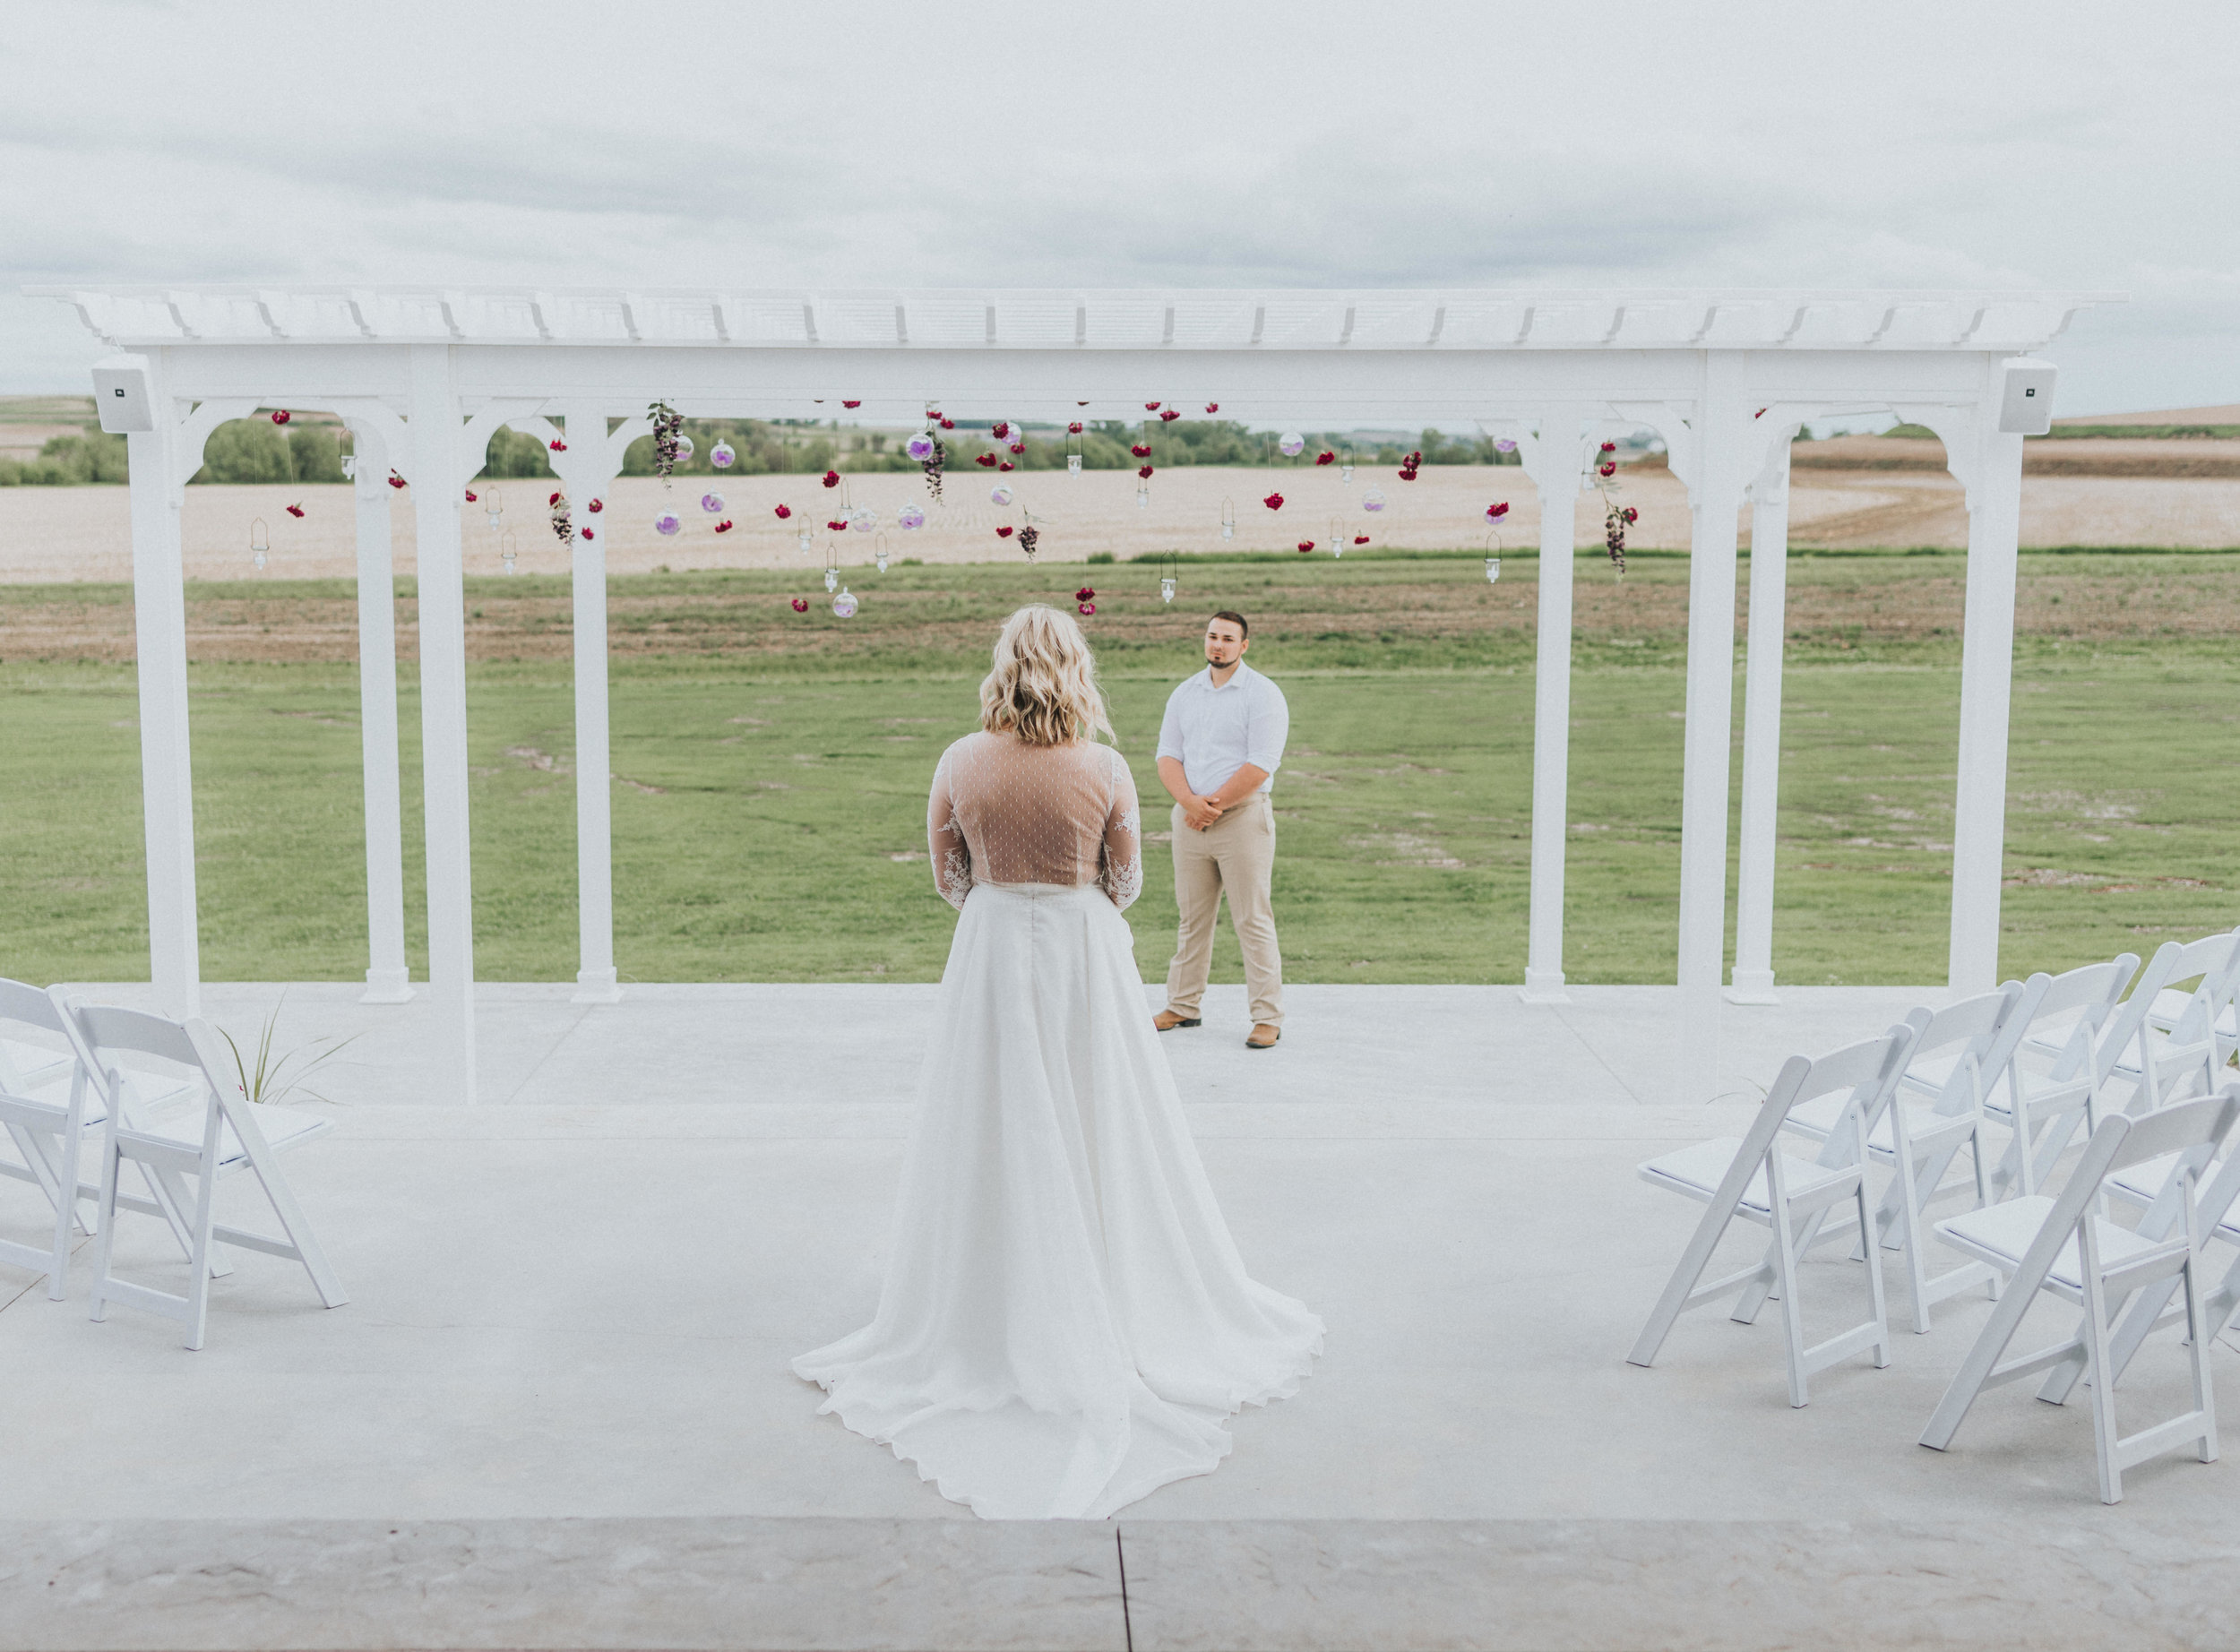 277 tiny-luxe-weddings-iowa-venue-photogeraphy-palace.jpg